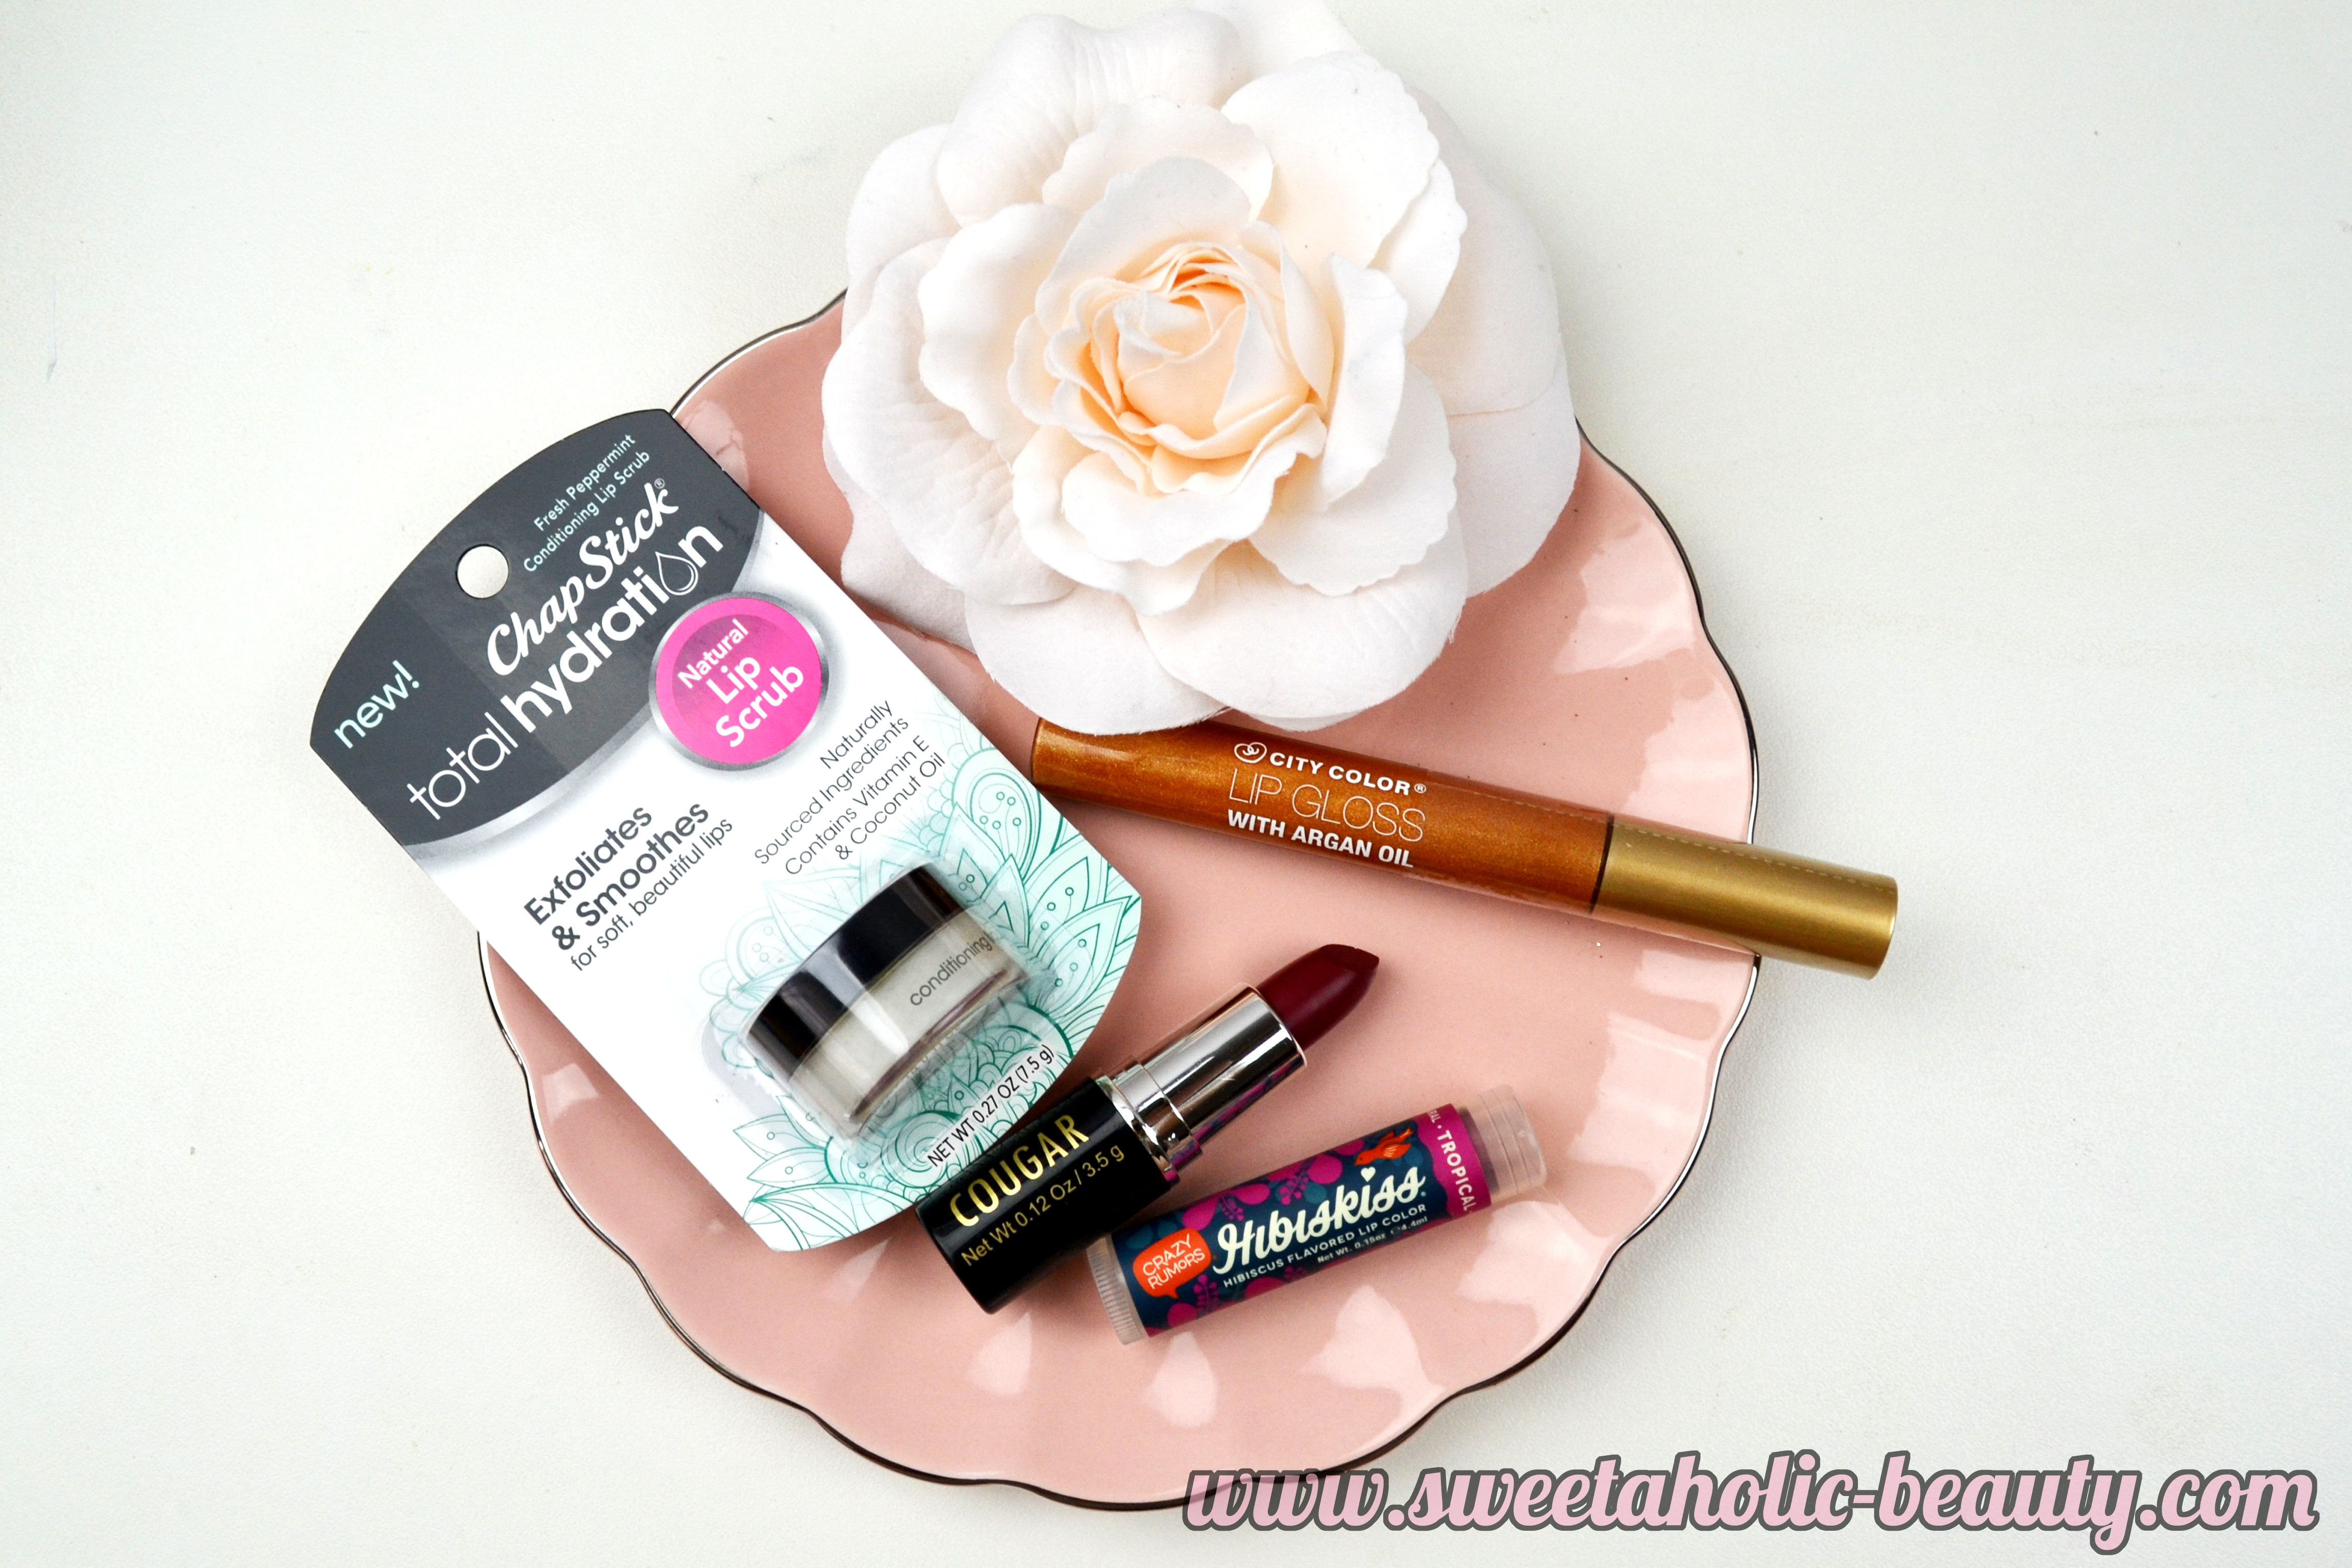 December Lip Monthly Unboxing - Sweetaholic Beauty